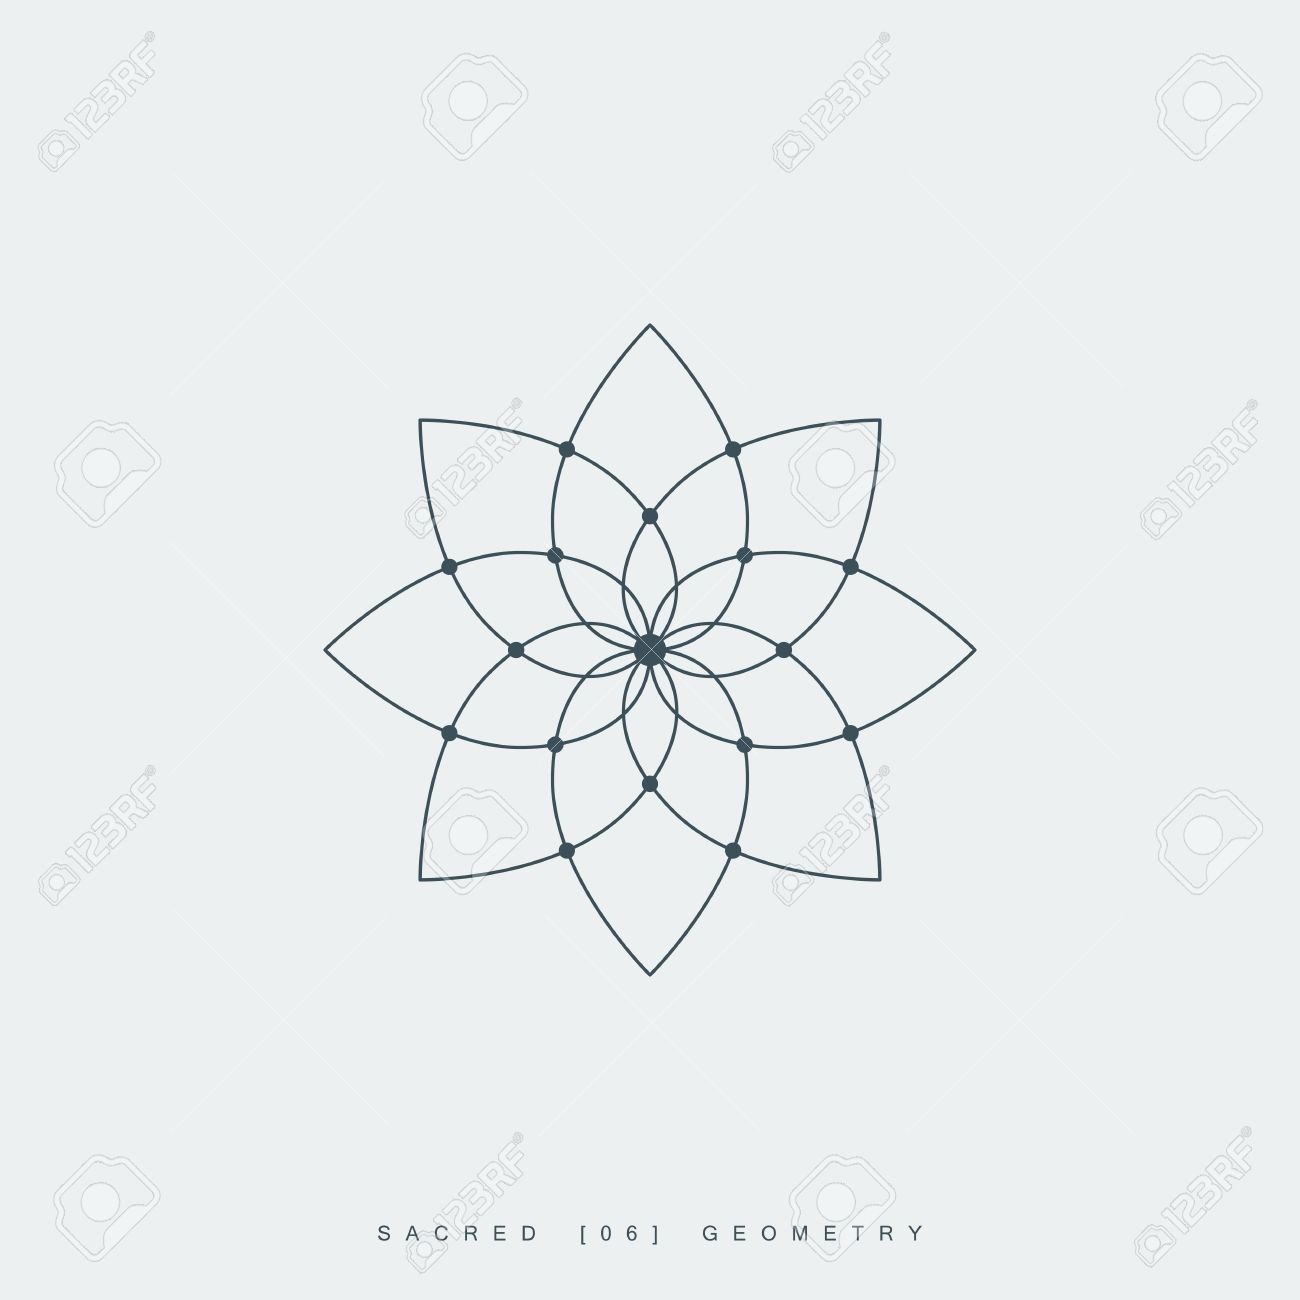 Lotus Line Drawing Geometry Wiring Diagrams Mtd 214406000 Parts List And Diagram 1994 Ereplacementparts Flower Of Life Sacred Mandala Ornament Rh 123rf Com Japanese